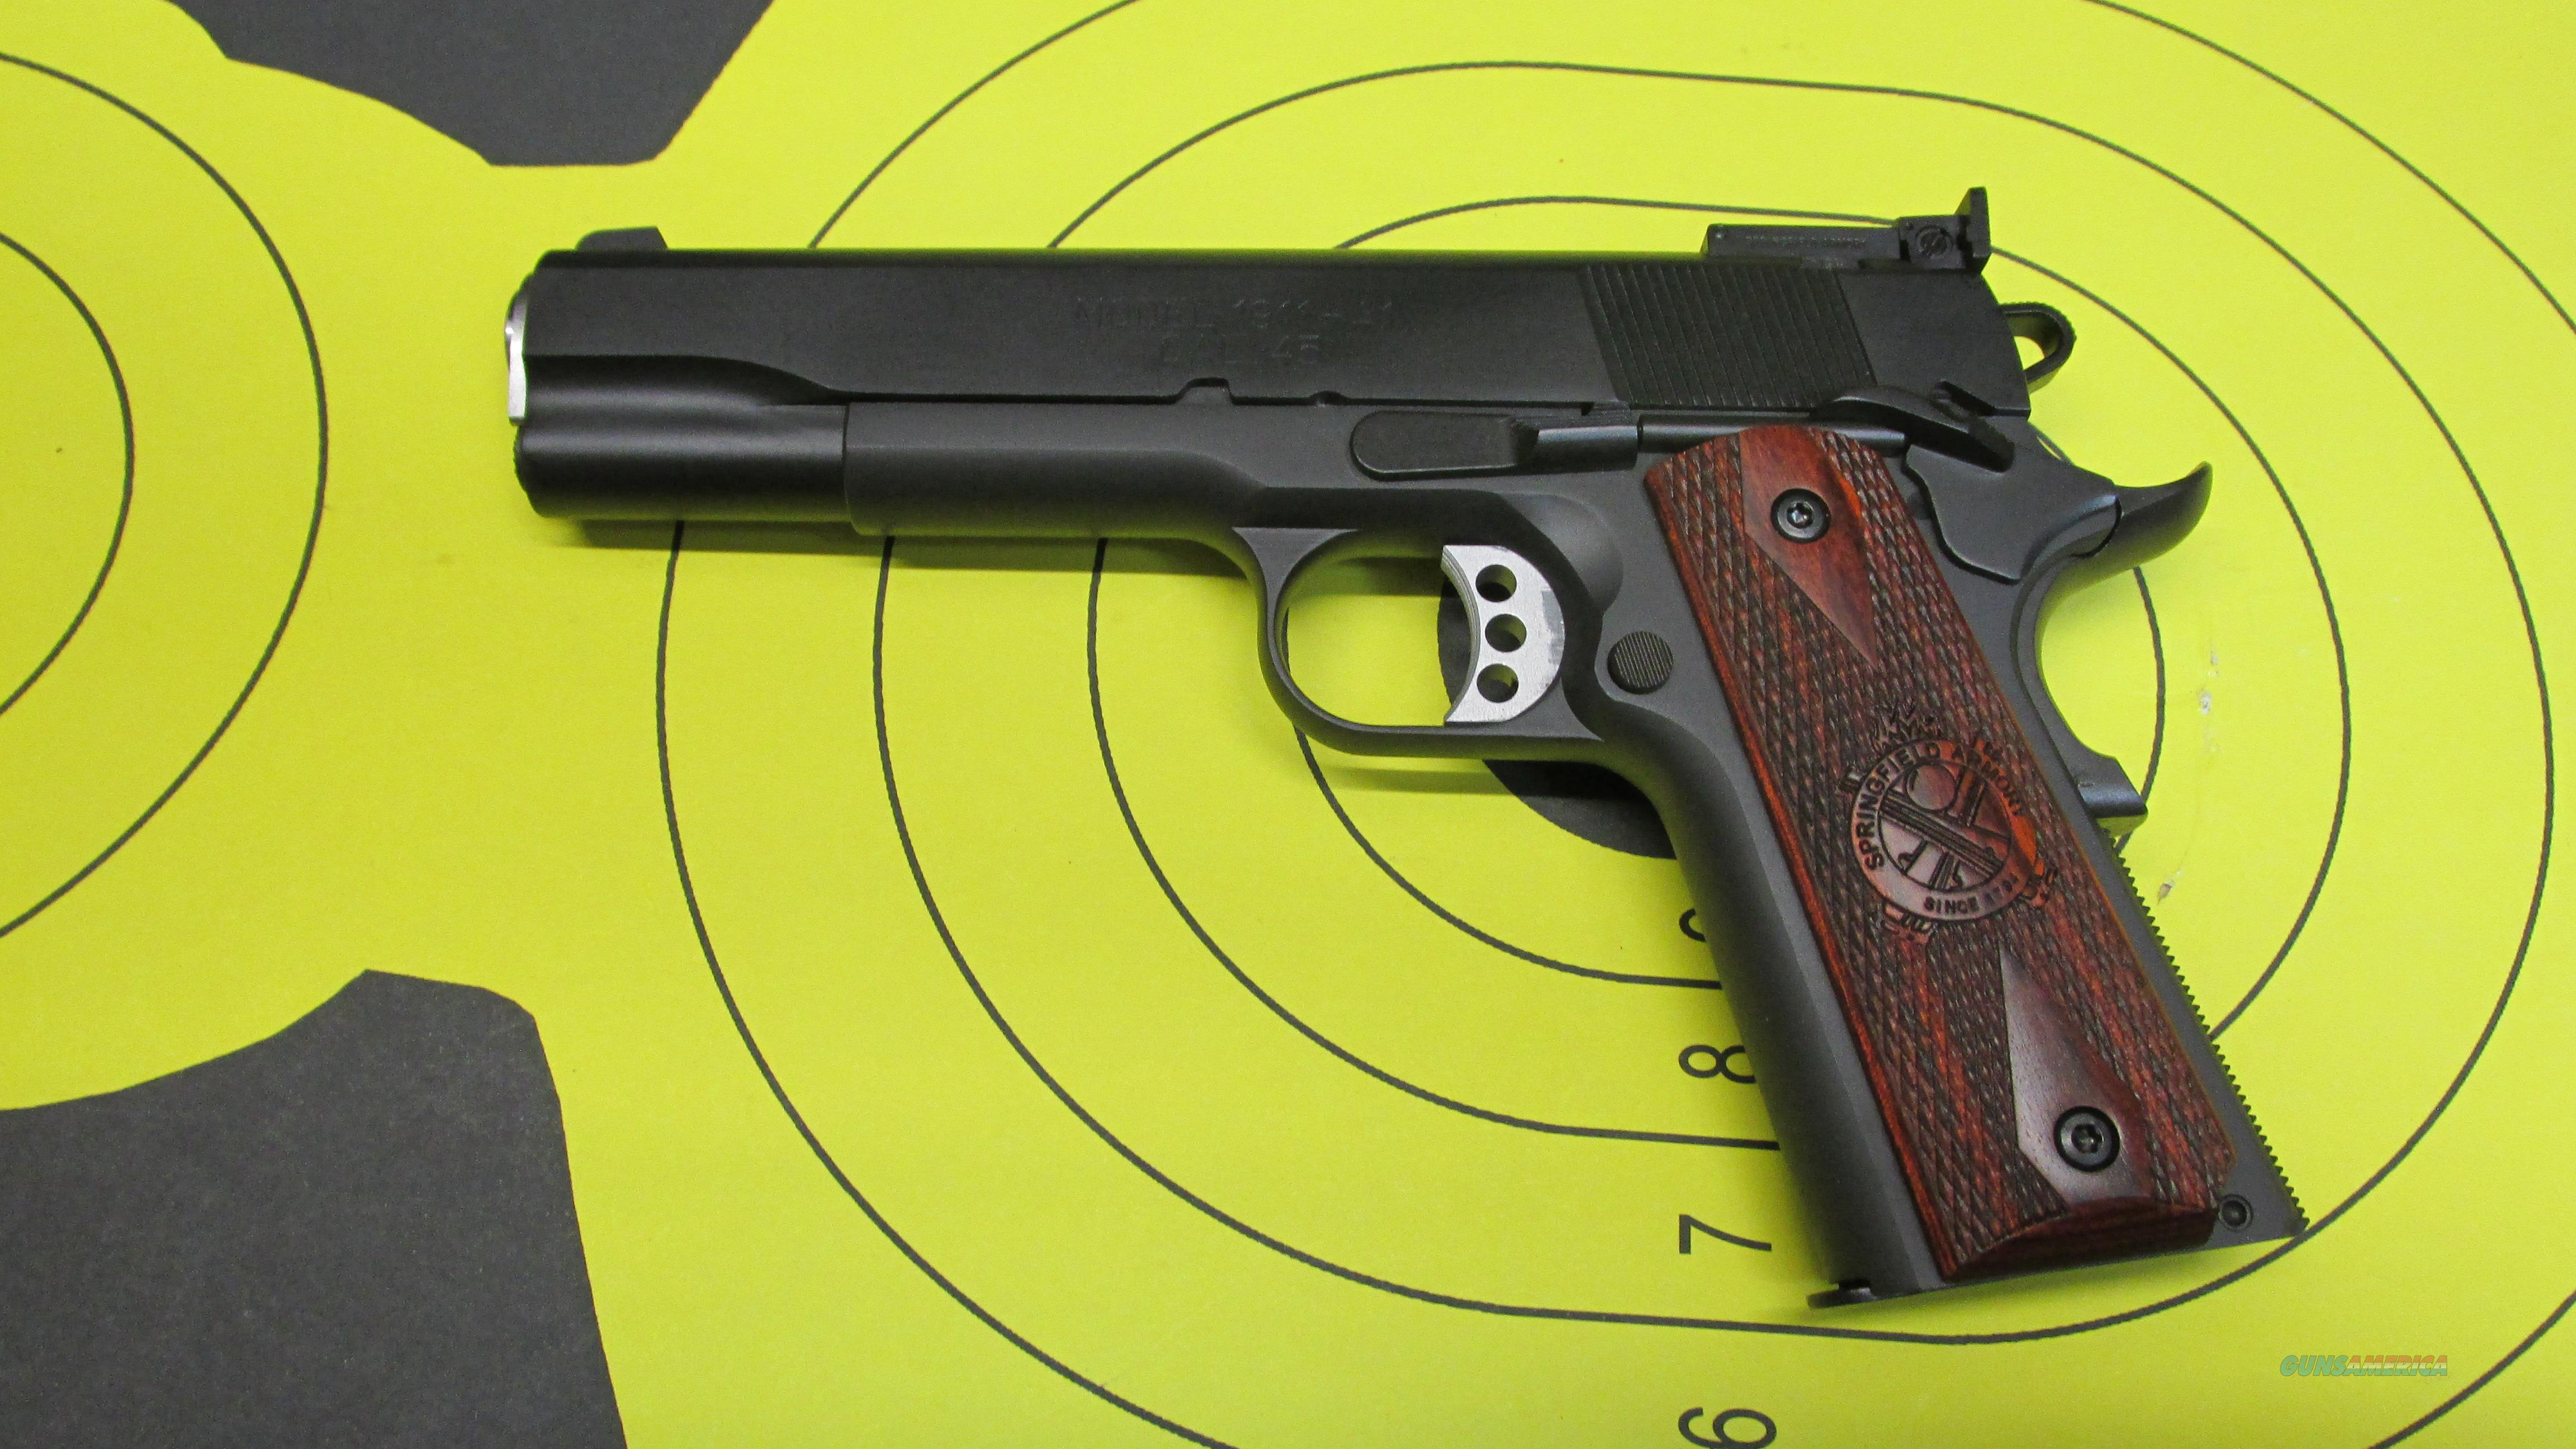 "SPRINGFIELD ARMORY 1911-A1 RANGE OFFICER .45ACP PISTOL 2 7 ROUND MAGAZINES WITH 5"" BARREL  Guns > Pistols > Springfield Armory Pistols > 1911 Type"